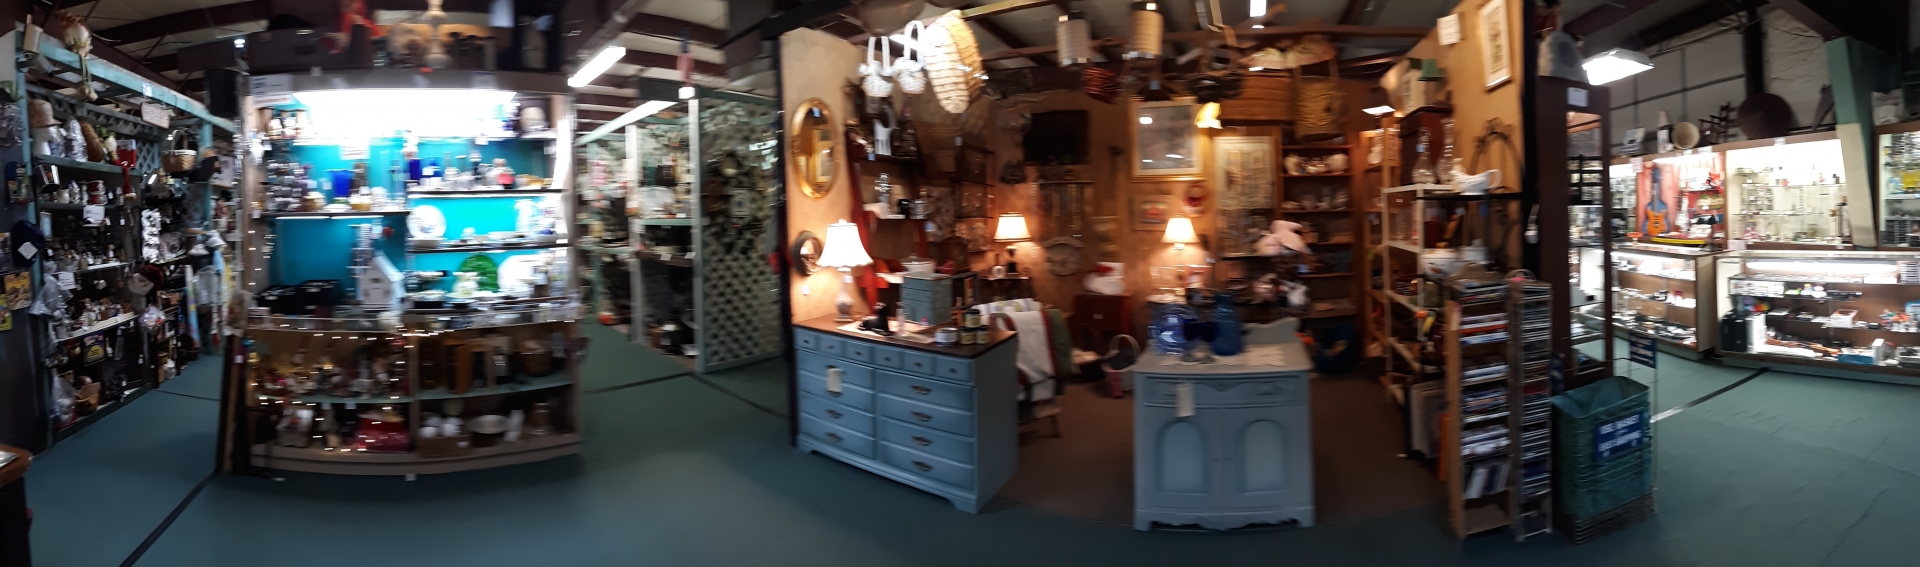 Scranberry Coop - Vintage Store - Antiques, Collectibles, & More